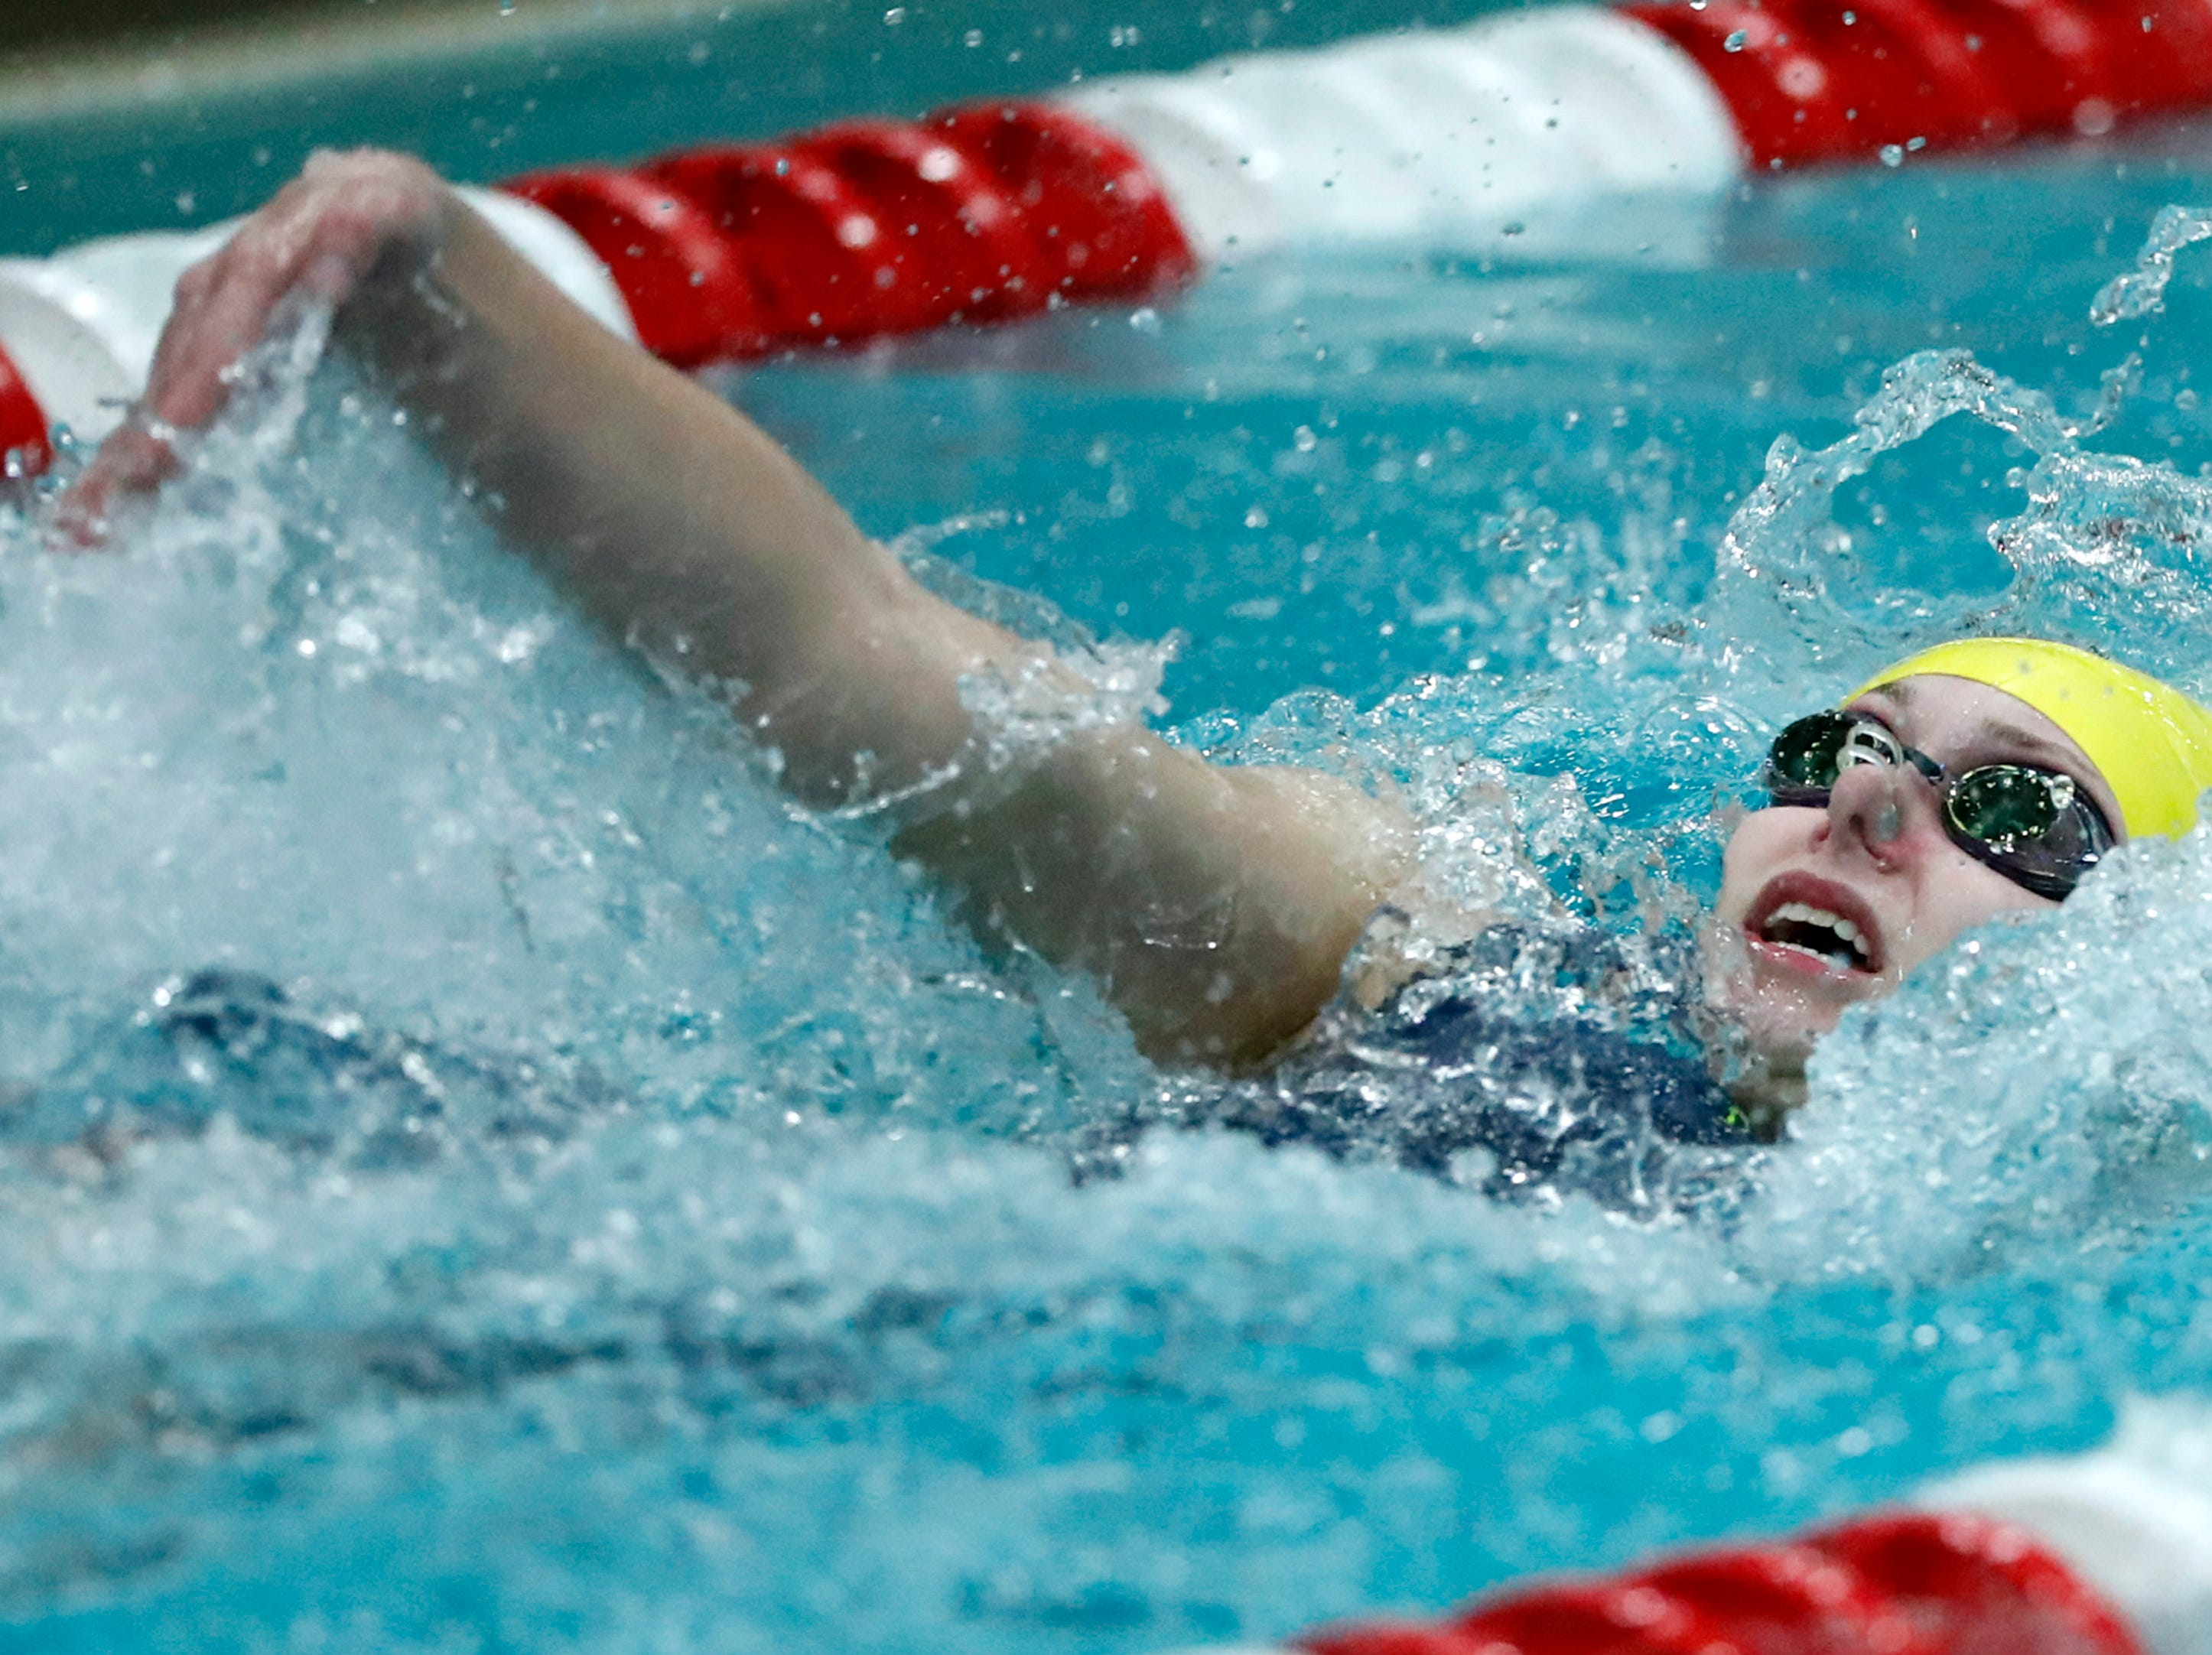 Tomahawk's Megan Marcks races in the 100 yard backstroke during the WIAA Division 2 State Swimming and Diving meet Friday, Nov. 9, 2018, at the UW Natatorium in Madison, Wis.Danny Damiani/USA TODAY NETWORK-Wisconsin